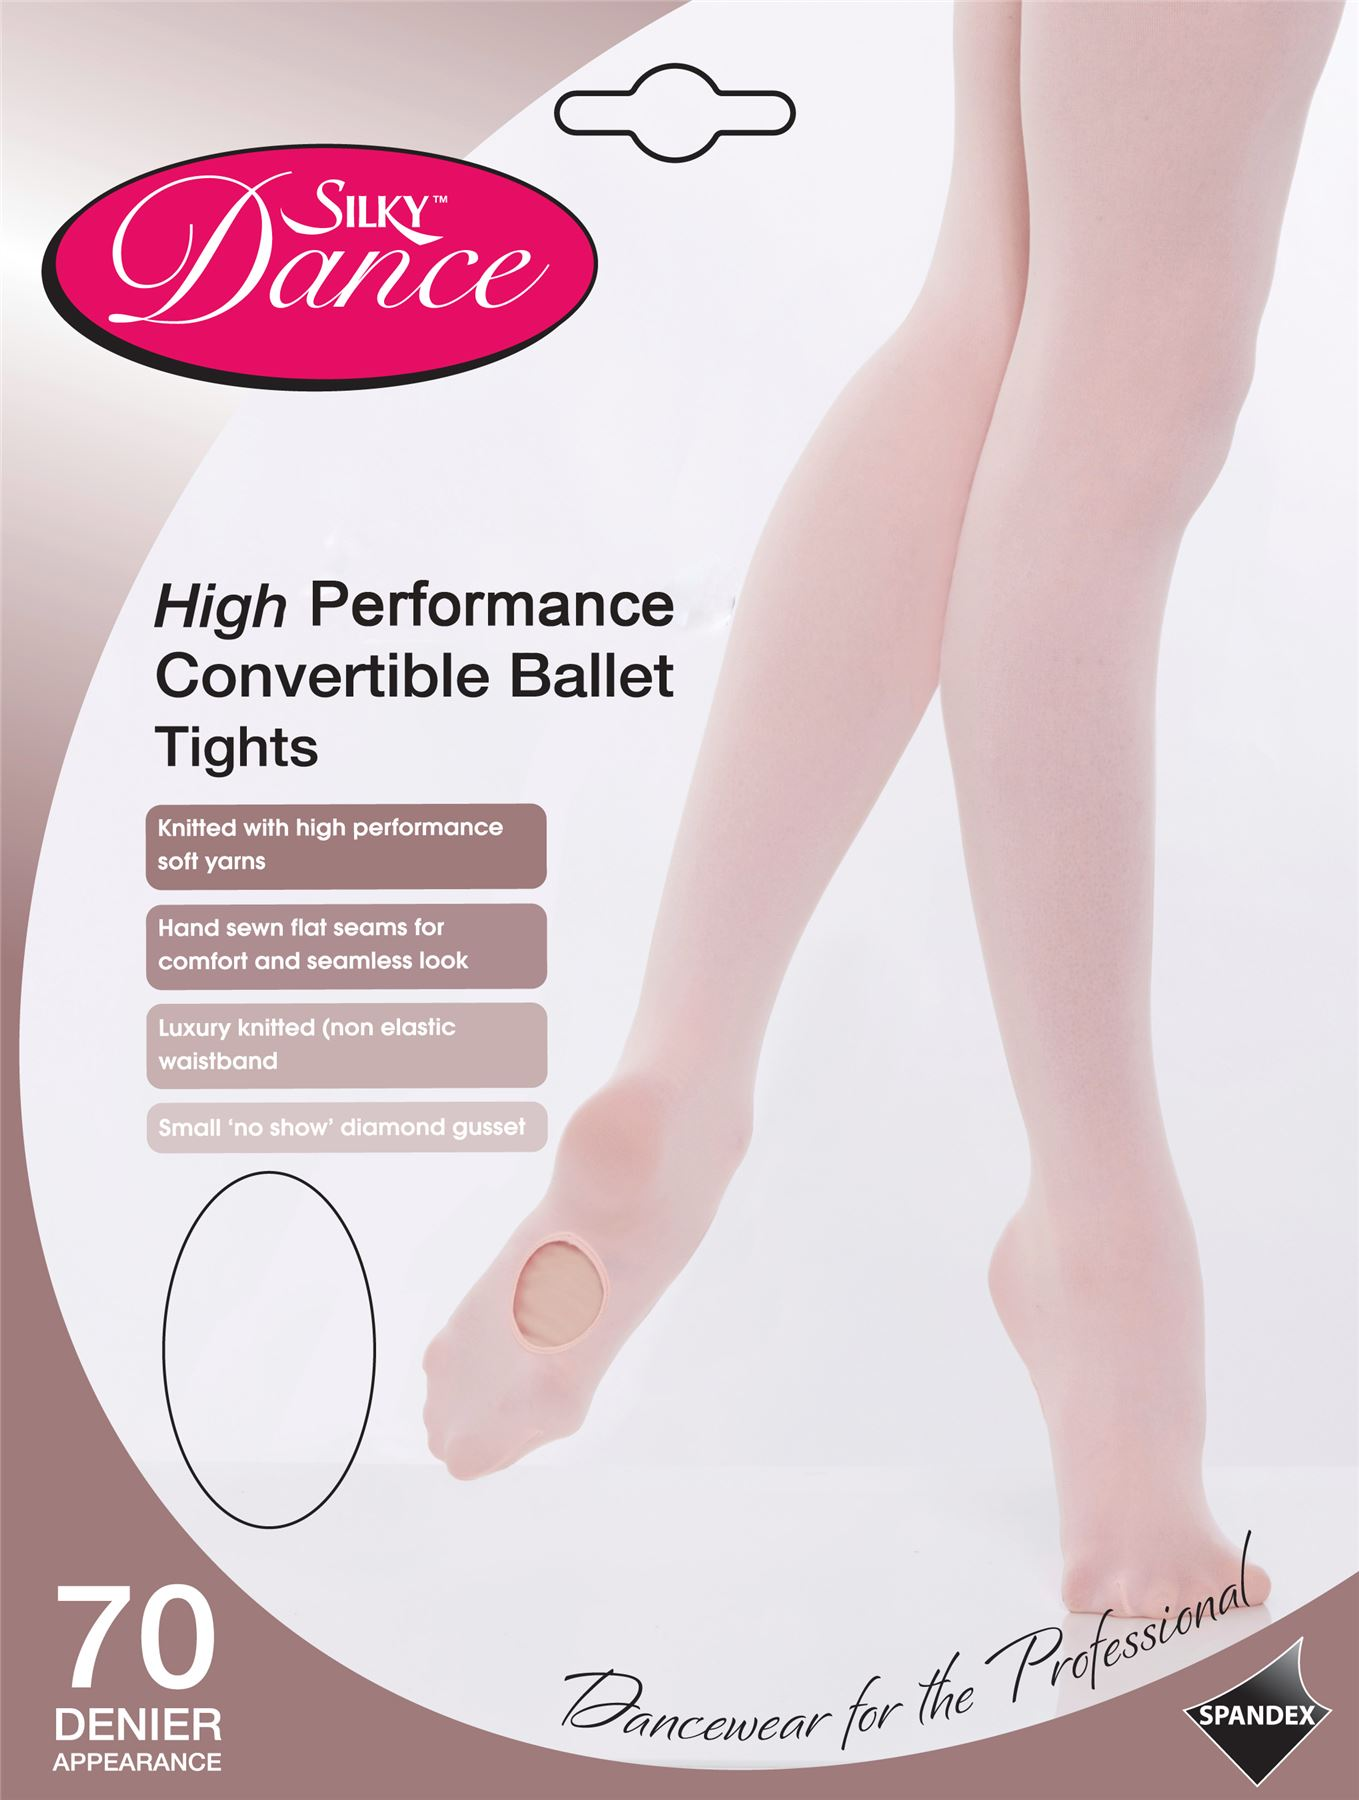 90ee08a5387 Details about Womens Silky Dance High Performance Convertible Ballet Tights  Theatrical Pink